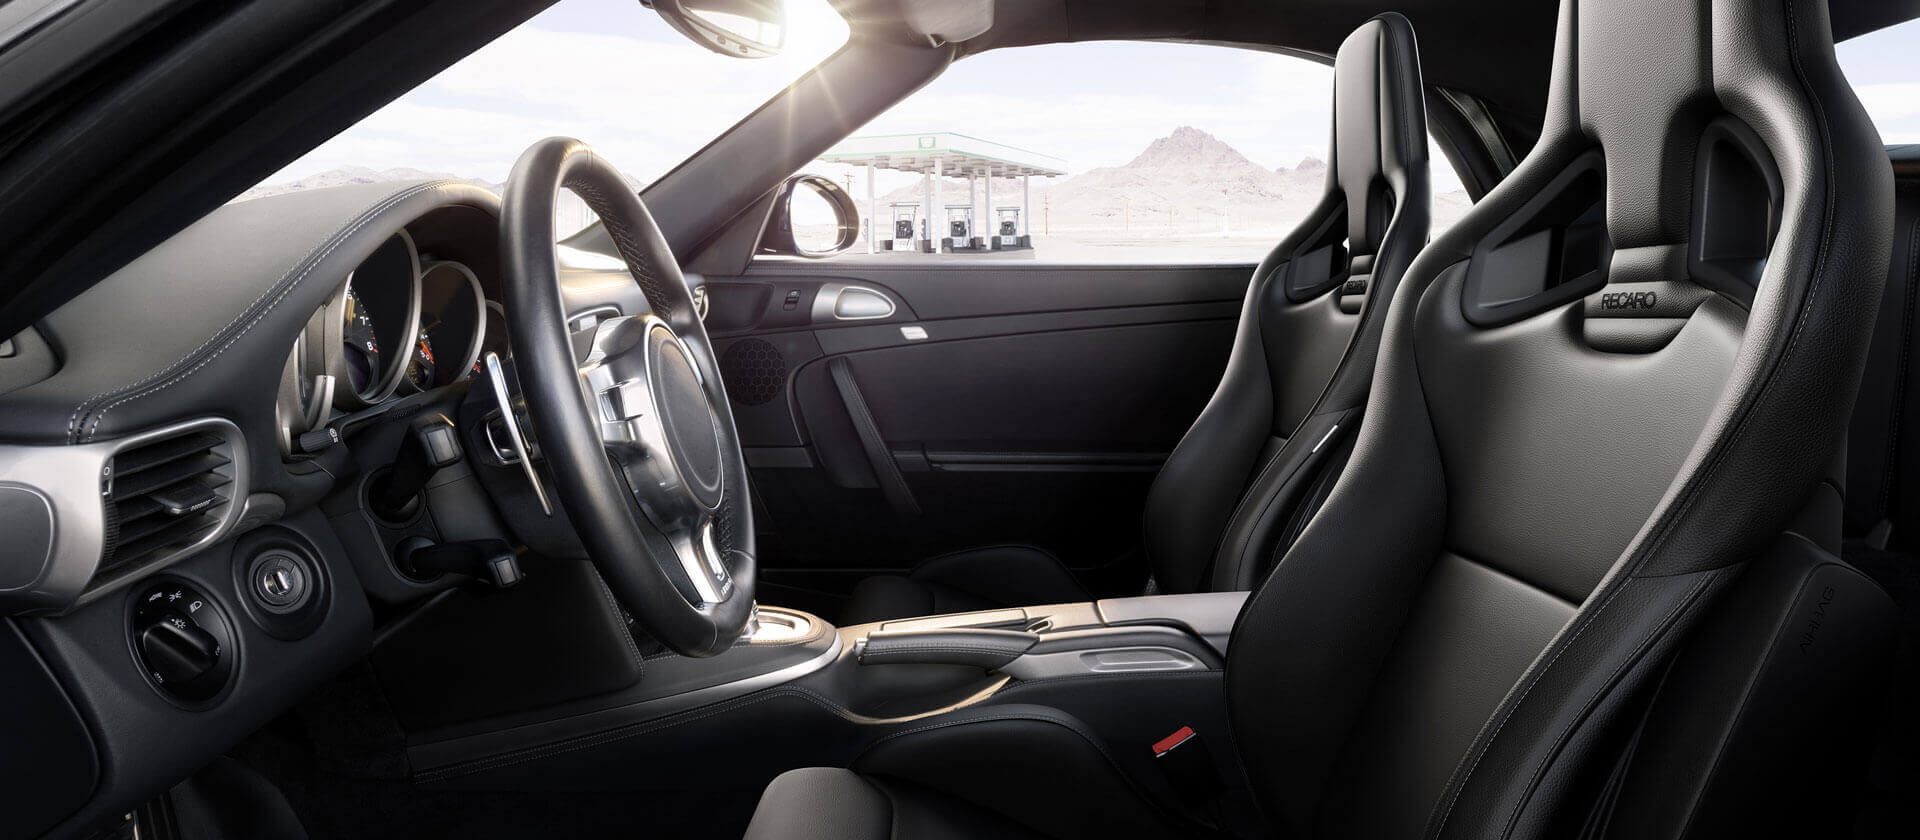 RECARO: Aftermarket, Commercial vehicle